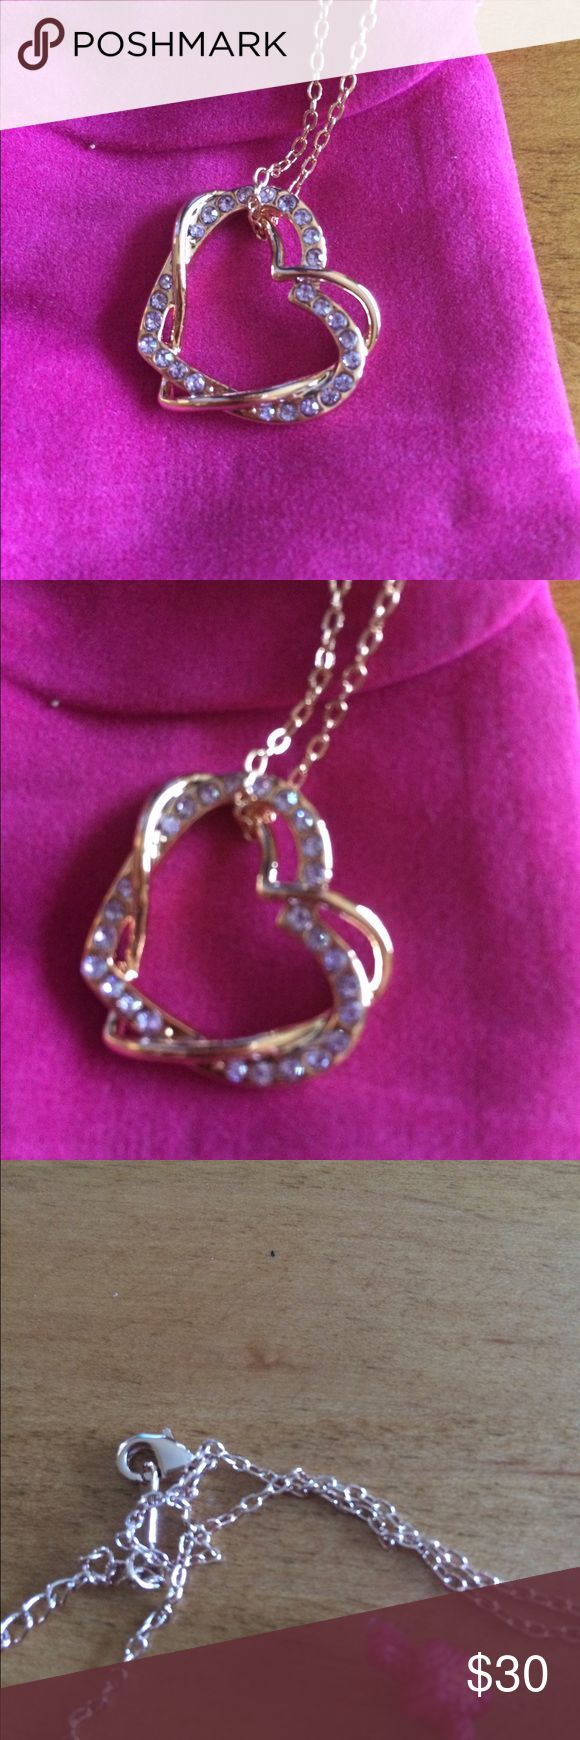 """Rose Gold Double Heart with Purple Rhinestones Brand New Rose Gold Double Heart Necklace. Purple Rhinestones and 18"""" adjustable chain. Little pink pouch included Jewelry Necklaces"""